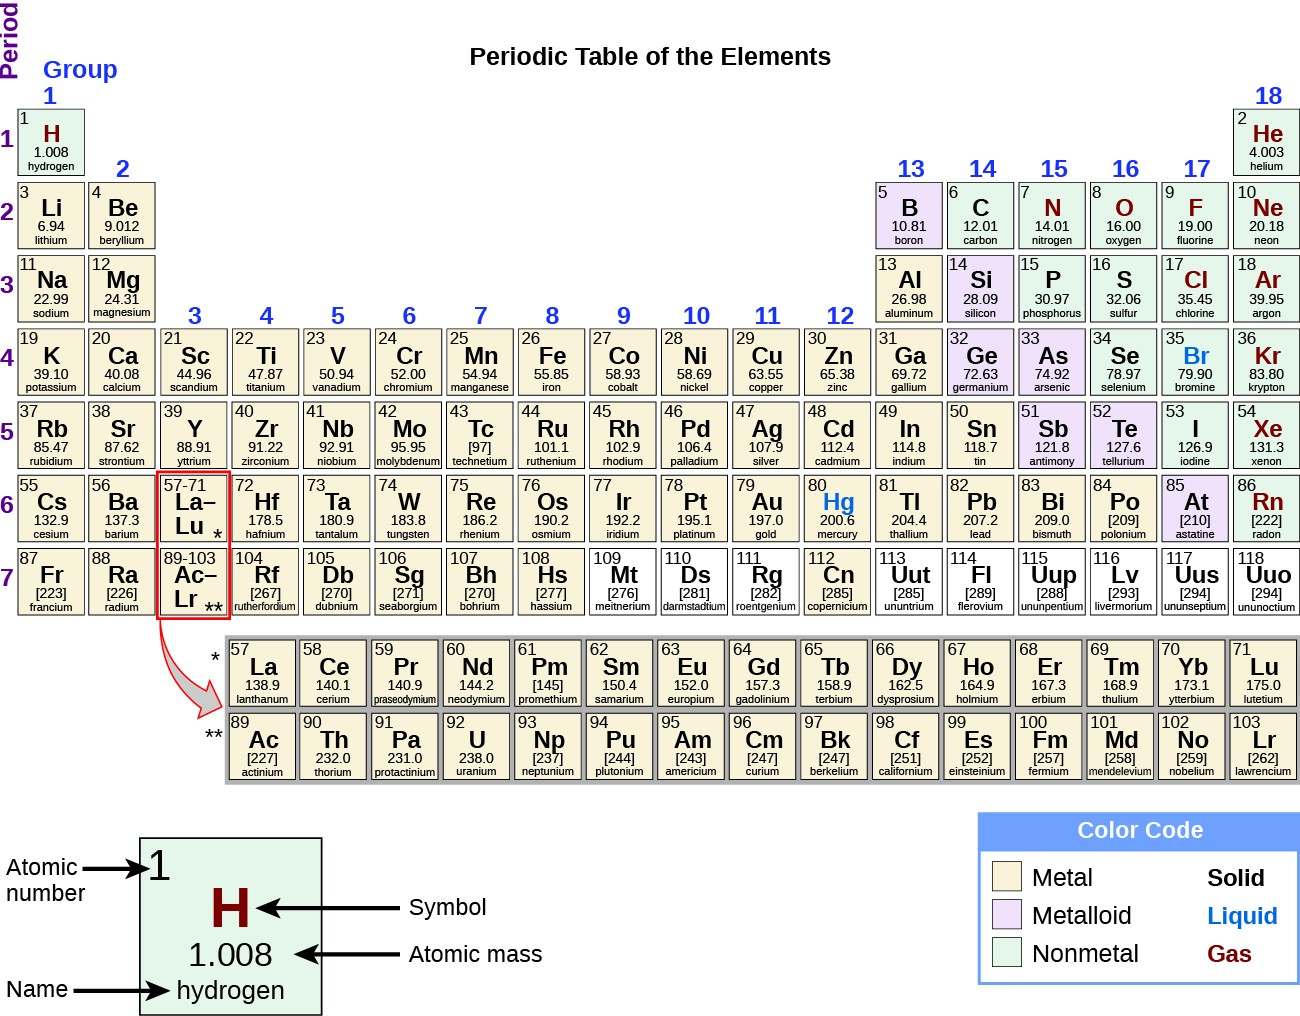 The periodic table chemistry for majors the periodic table of elements is shown the 18 columns are labeled group gamestrikefo Gallery